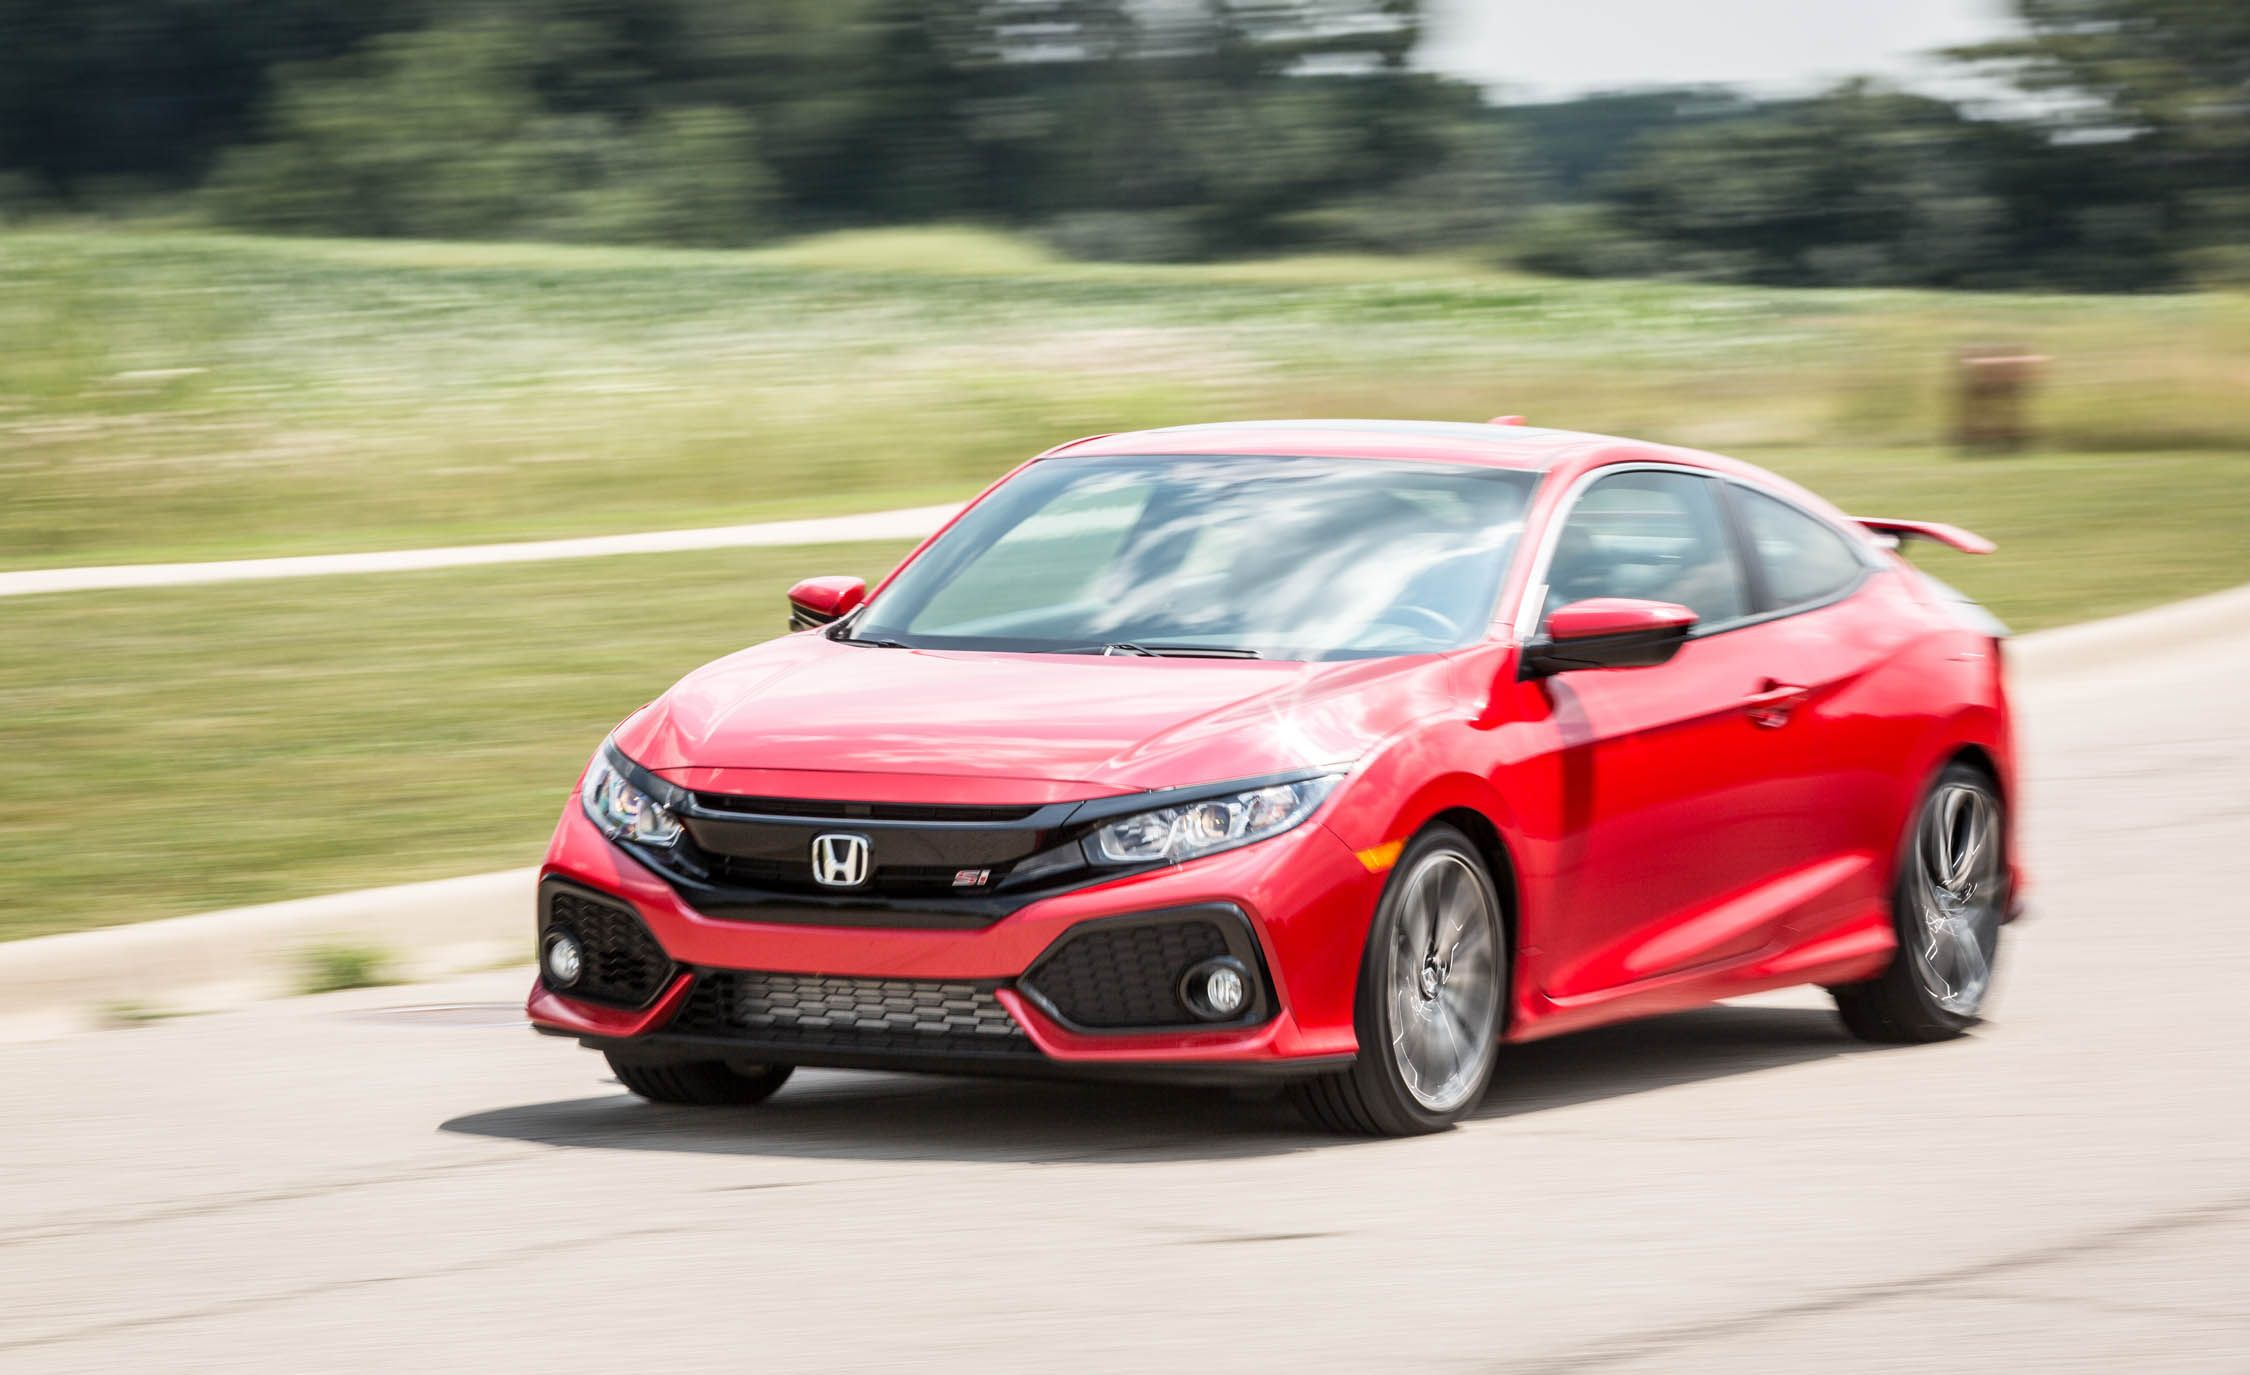 2017 honda civic si safety and driver assistance review car and driver. Black Bedroom Furniture Sets. Home Design Ideas